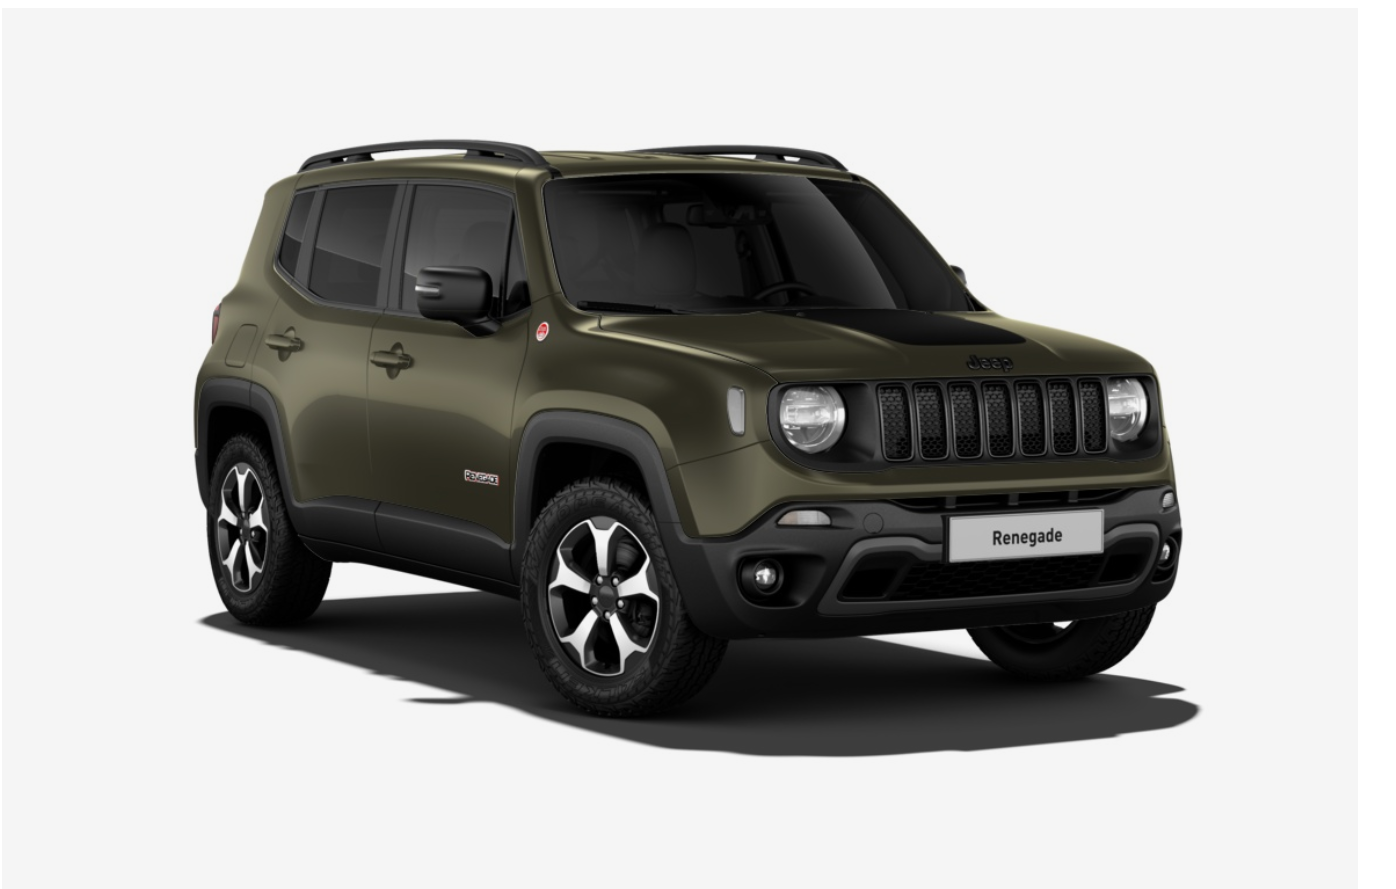 Jeep Renegade 2.0 Multijet Trailhawk 5dr 4WD Auto